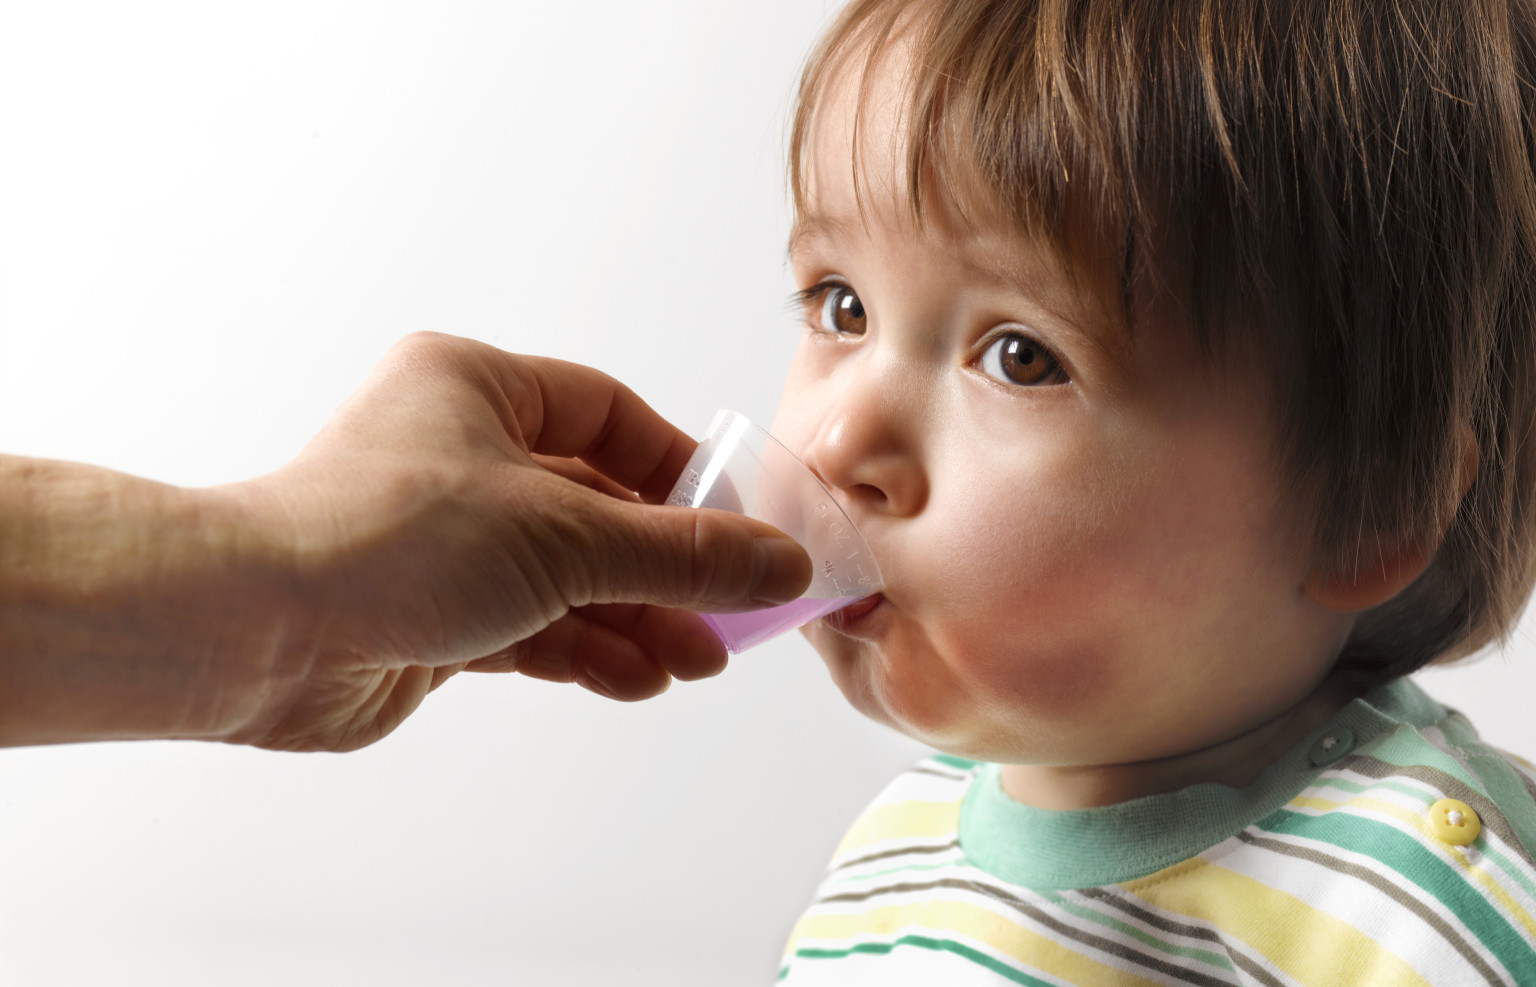 Antibiotics Series #2 – Choosing the Correct Antibiotic for Your Child's Illness